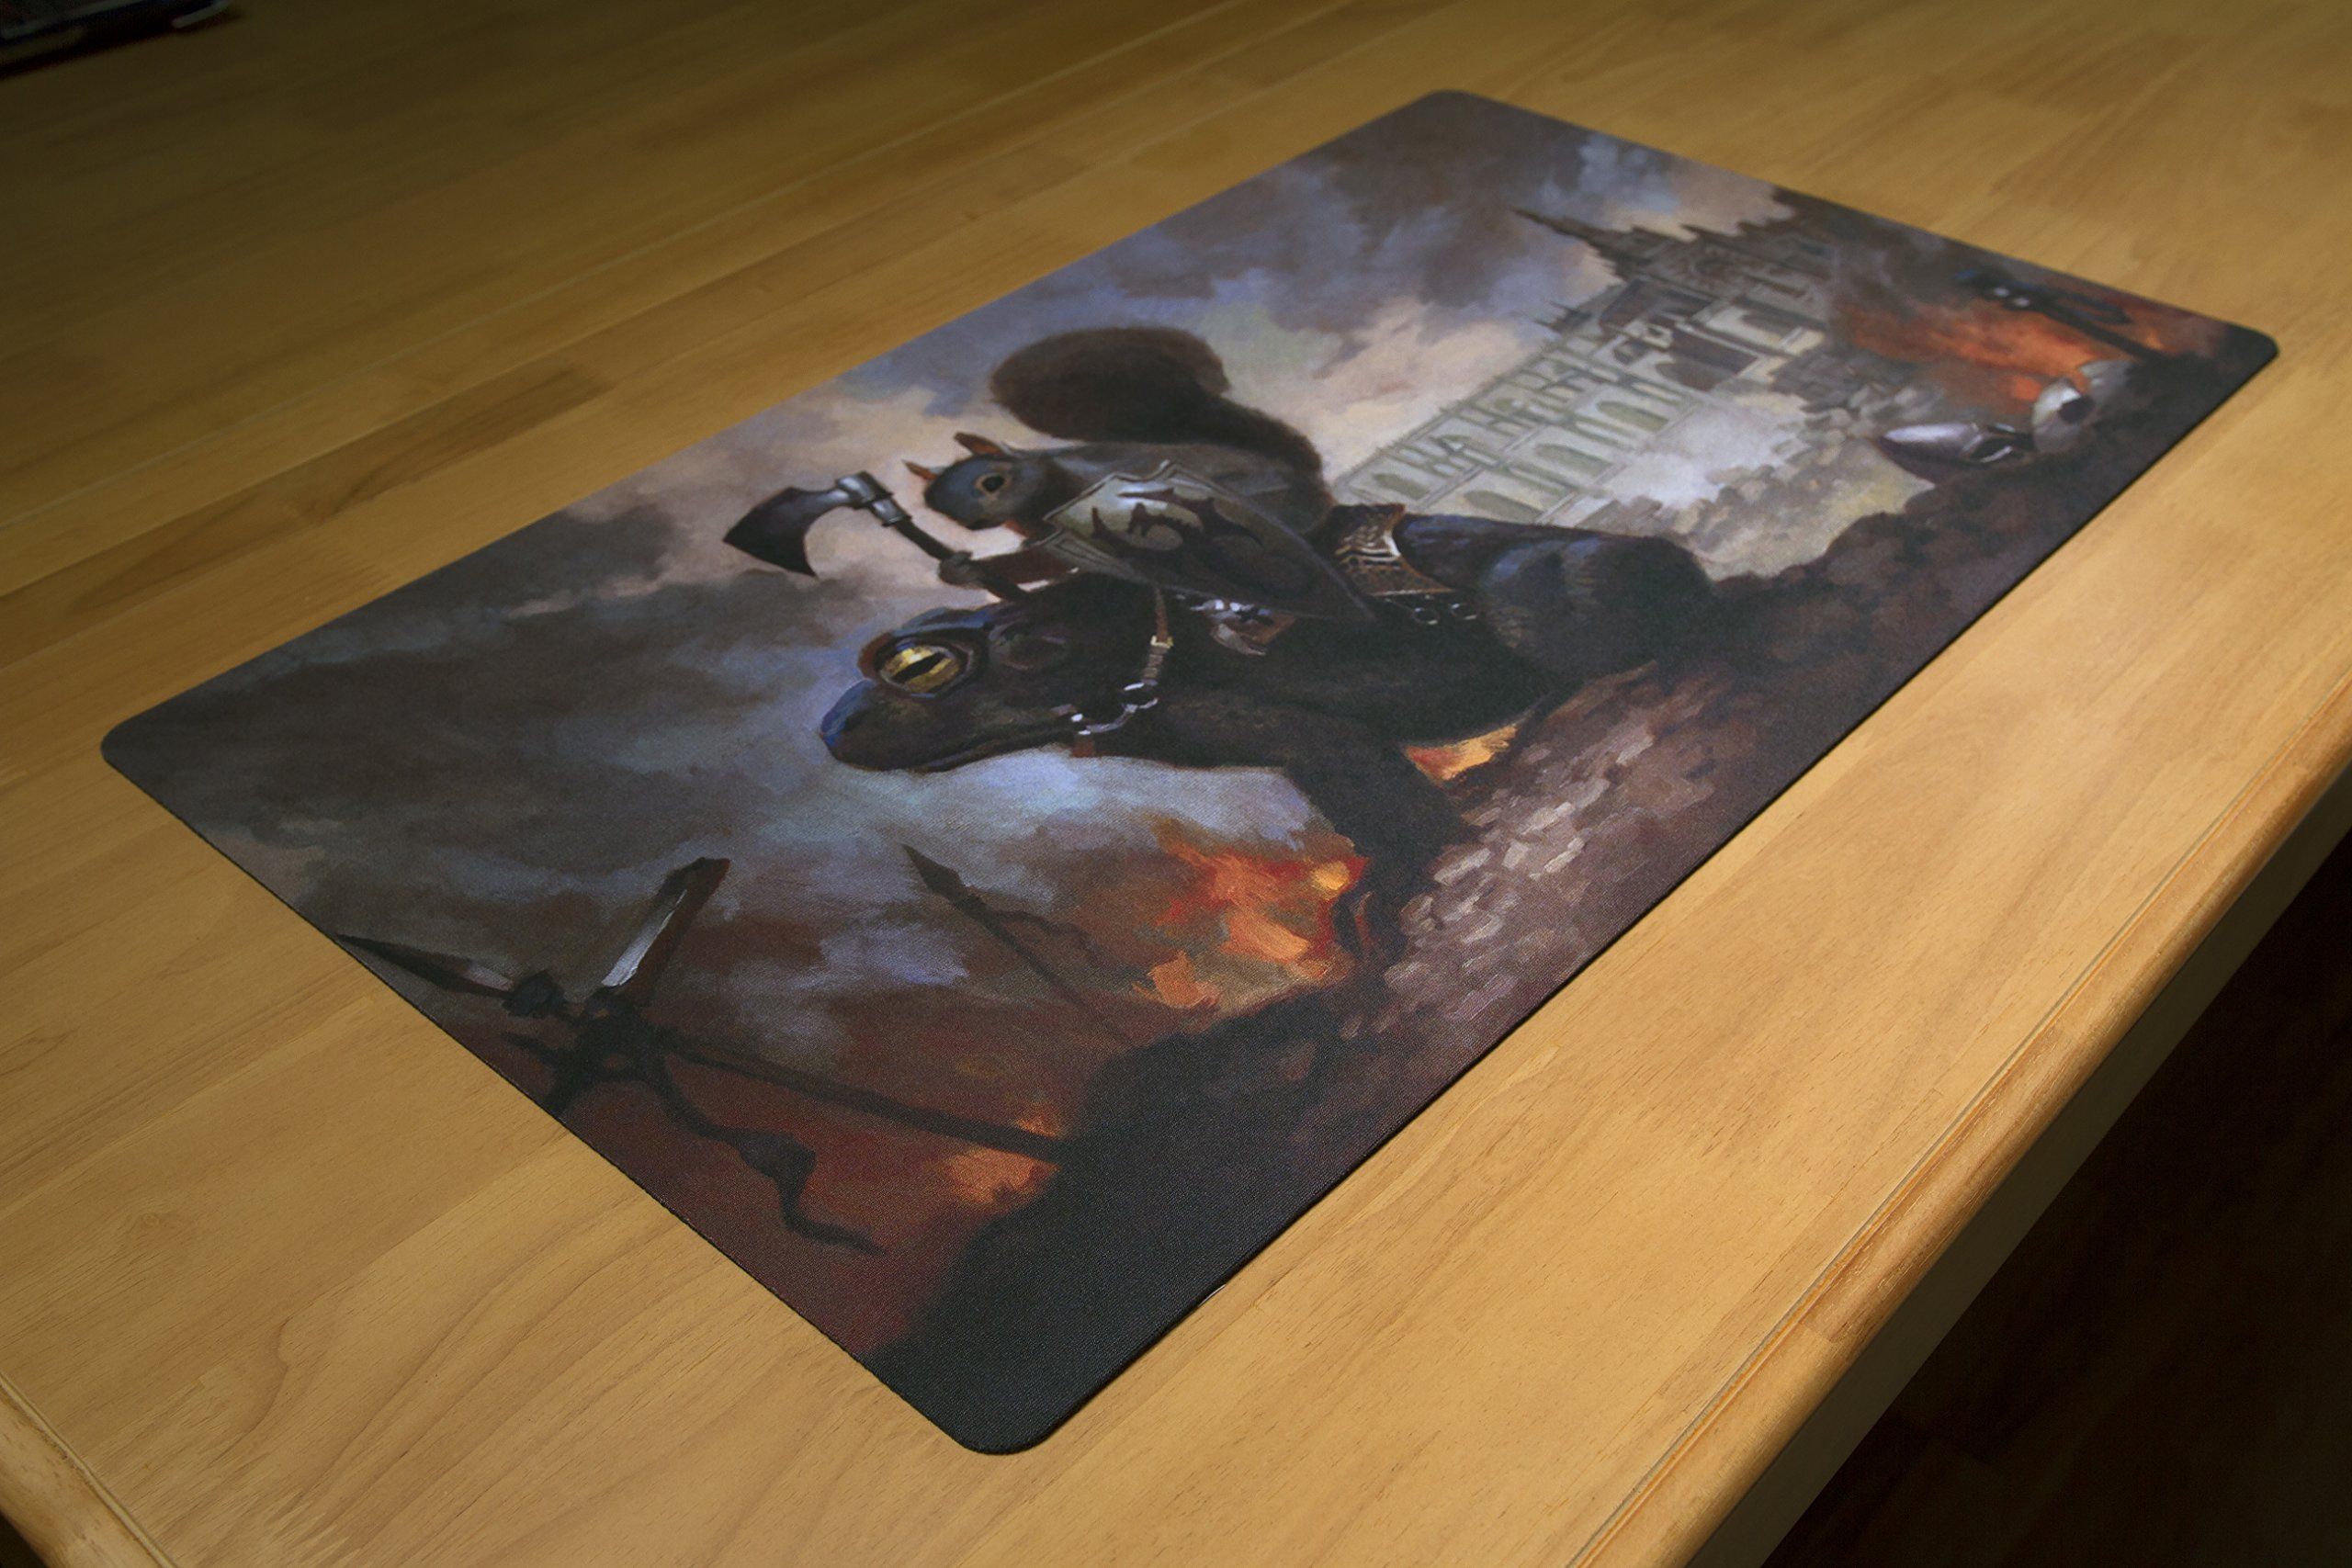 Inked Playmats Toad Rider Playmat Inked Gaming Perfect for Card Gaming TCG Game Mat by Inked Playmats (Image #4)